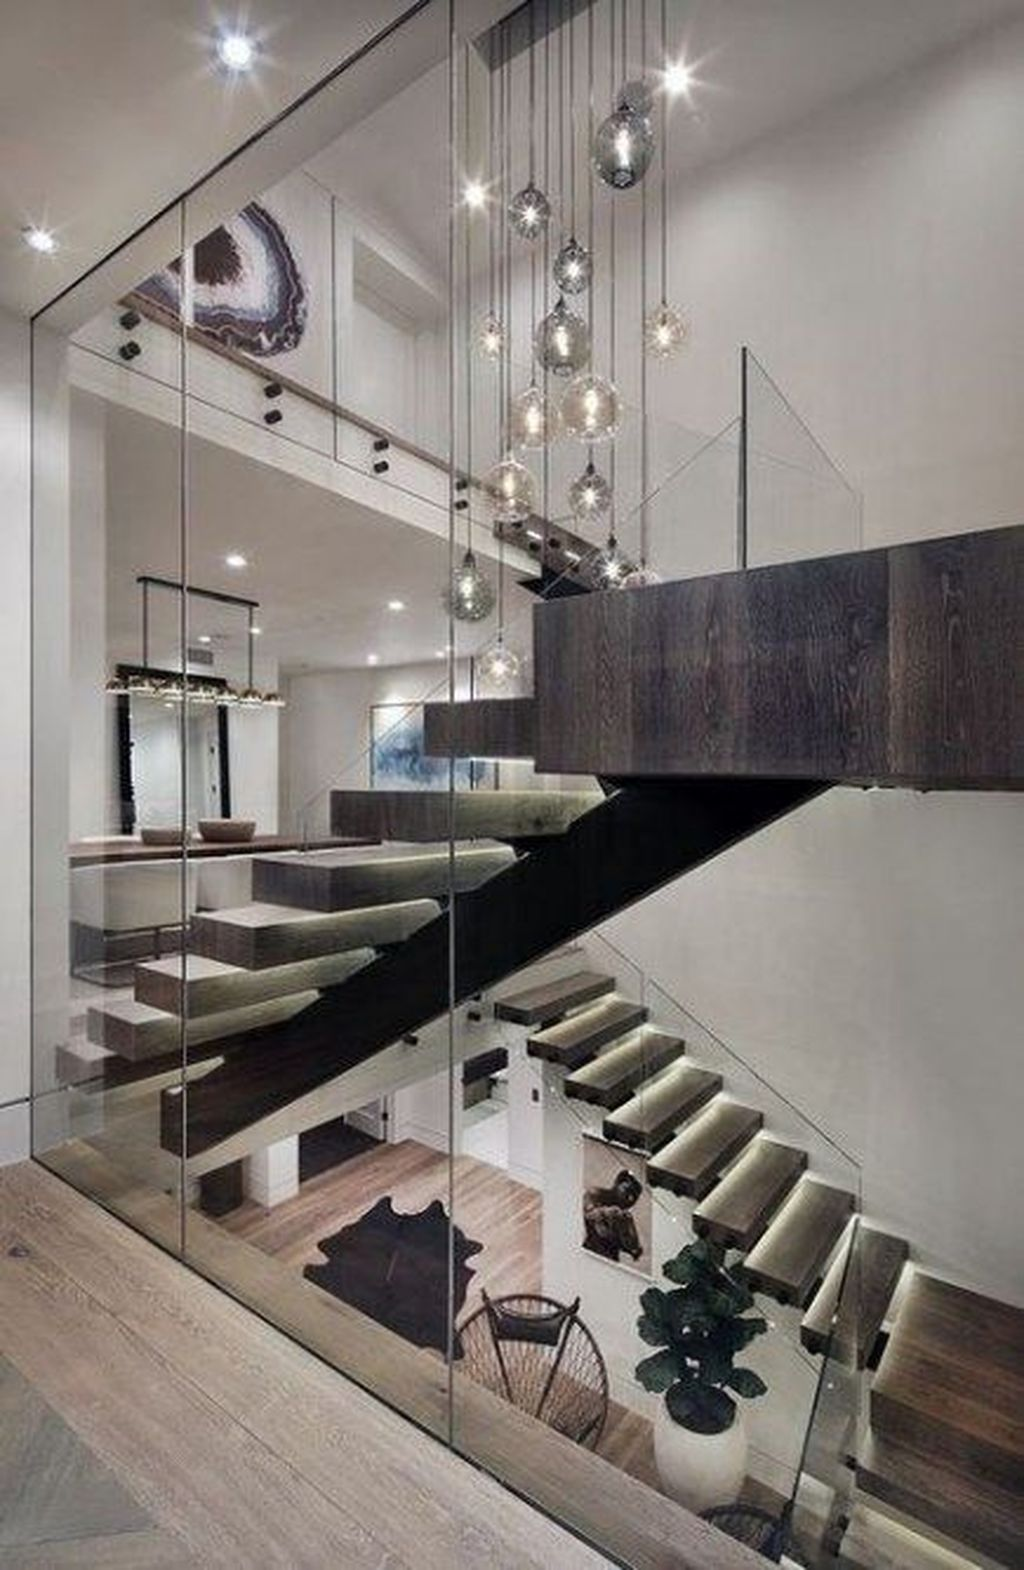 Awesome Modern Glass Railings Design Ideas For Stairs 17 ...